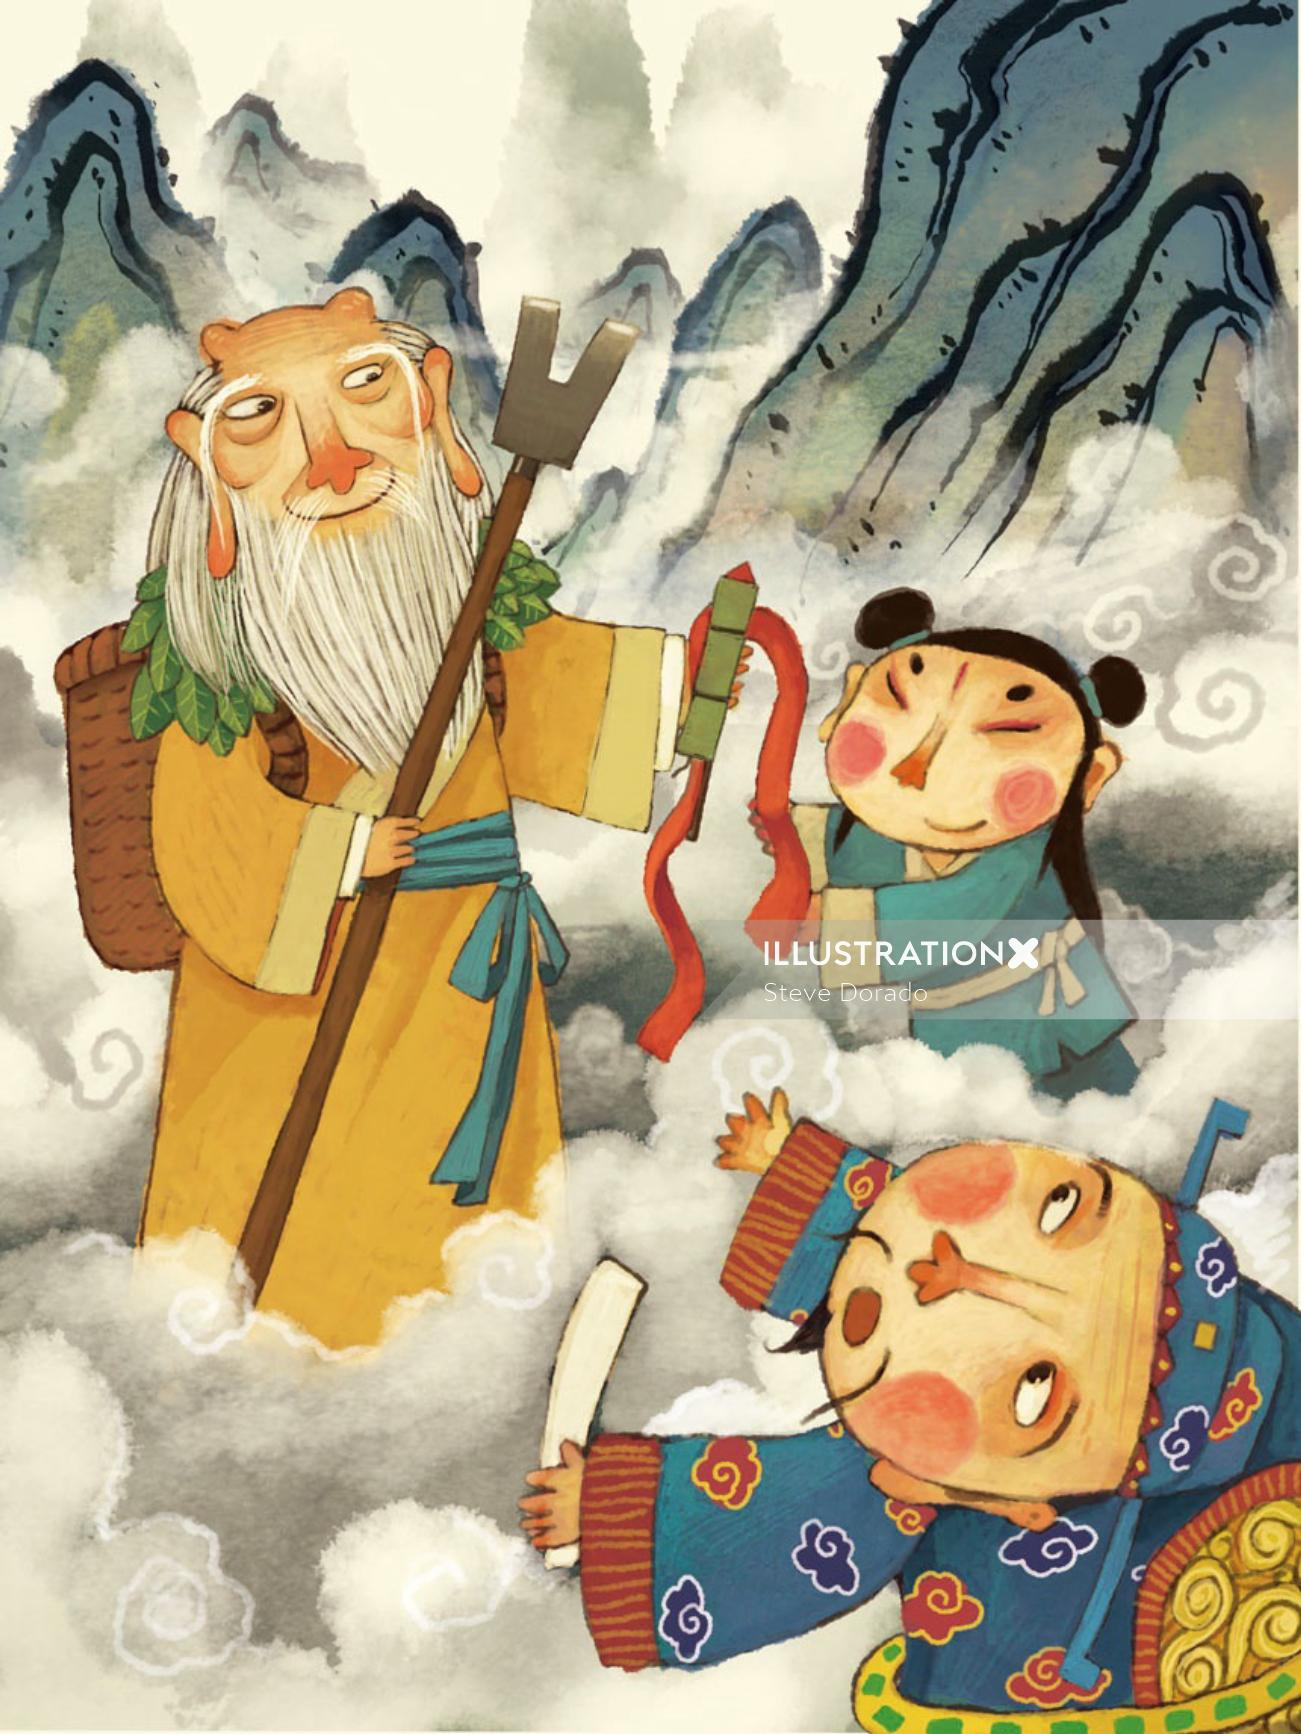 graphical illustration of Chinese story nian